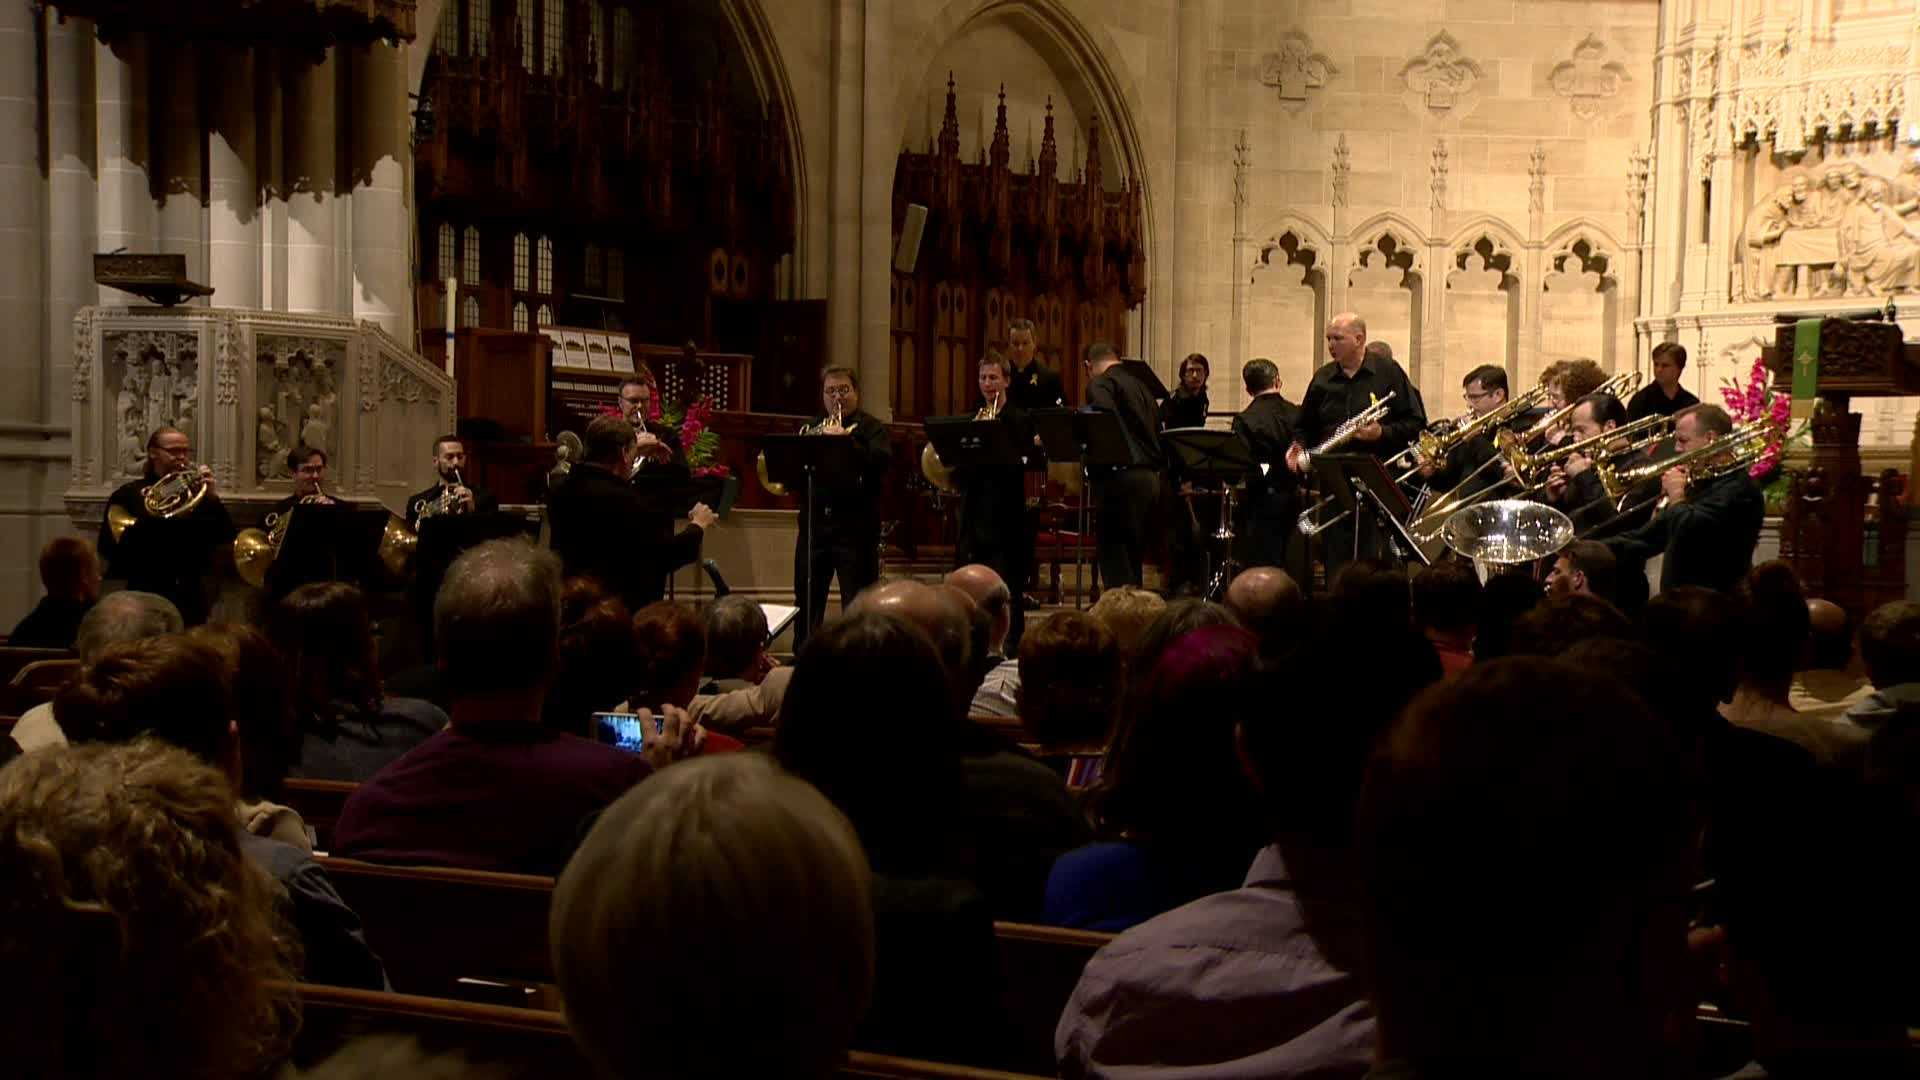 PSO musicians and management to resume talks as smaller community concerts continue